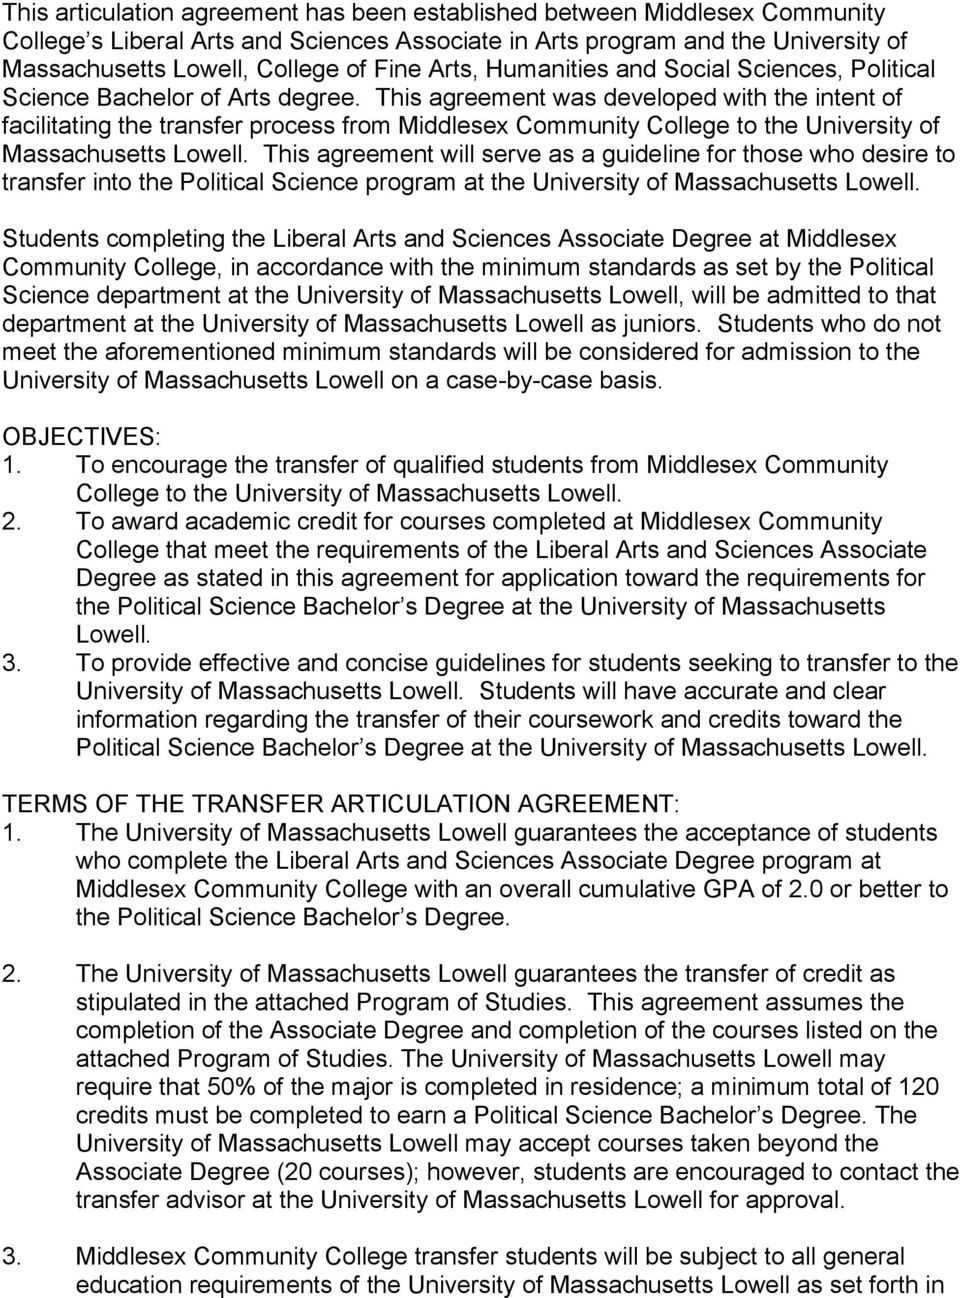 This agreement was developed with the intent of facilitating the transfer process from Middlesex Community College to the University of Massachusetts Lowell.